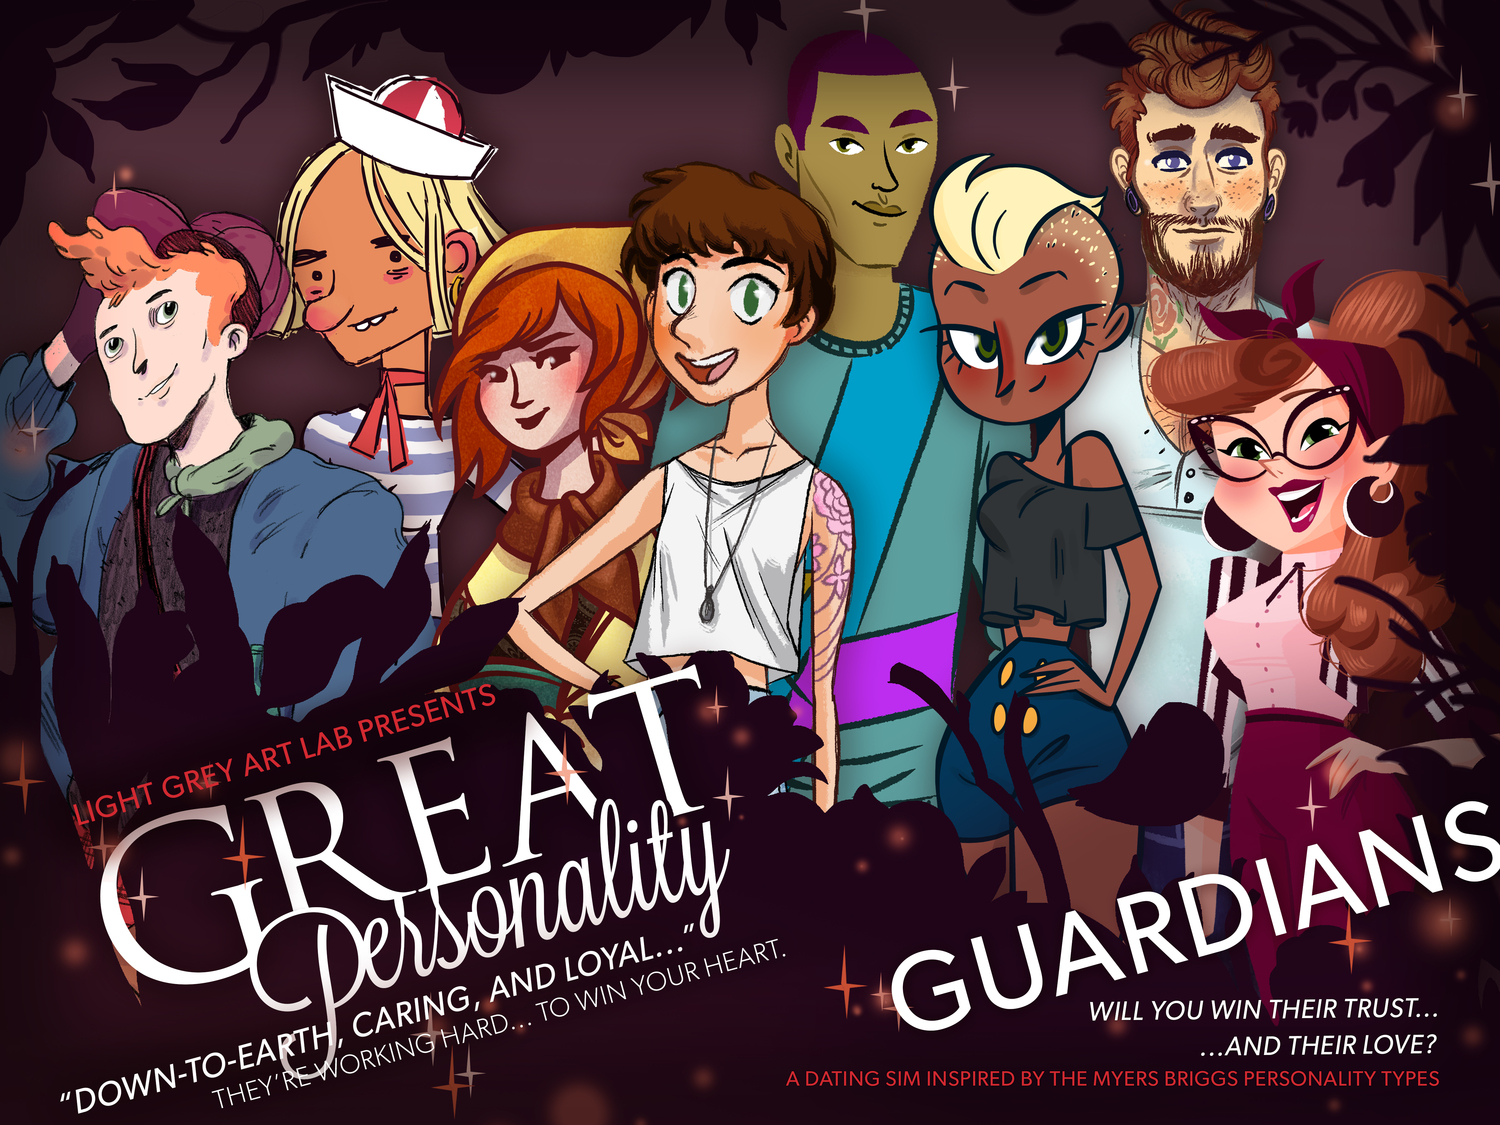 Guardians_GreatPersonality_Lightgreyartlab.jpg